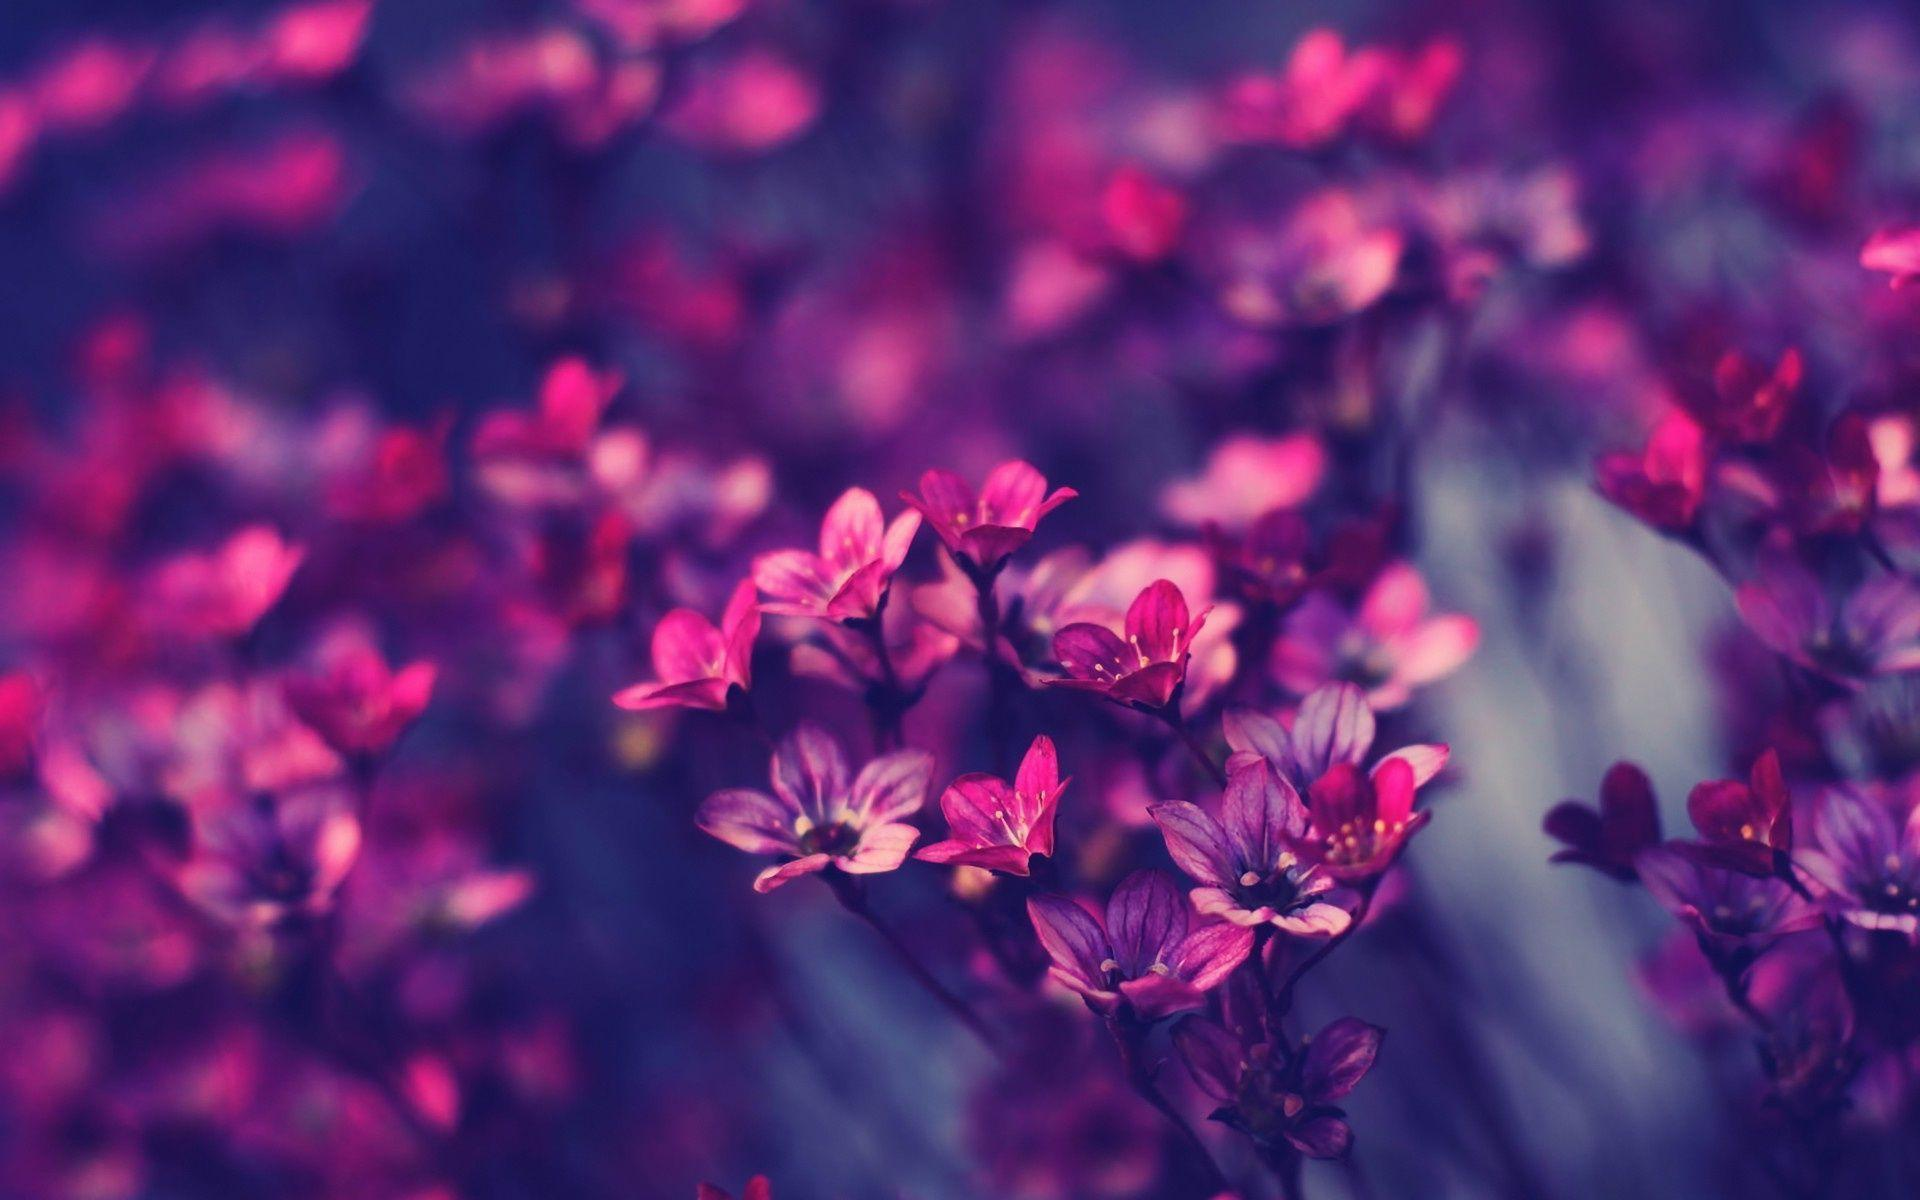 Purple Flower Desktop Wallpapers Top Free Purple Flower Desktop Backgrounds Wallpaperaccess